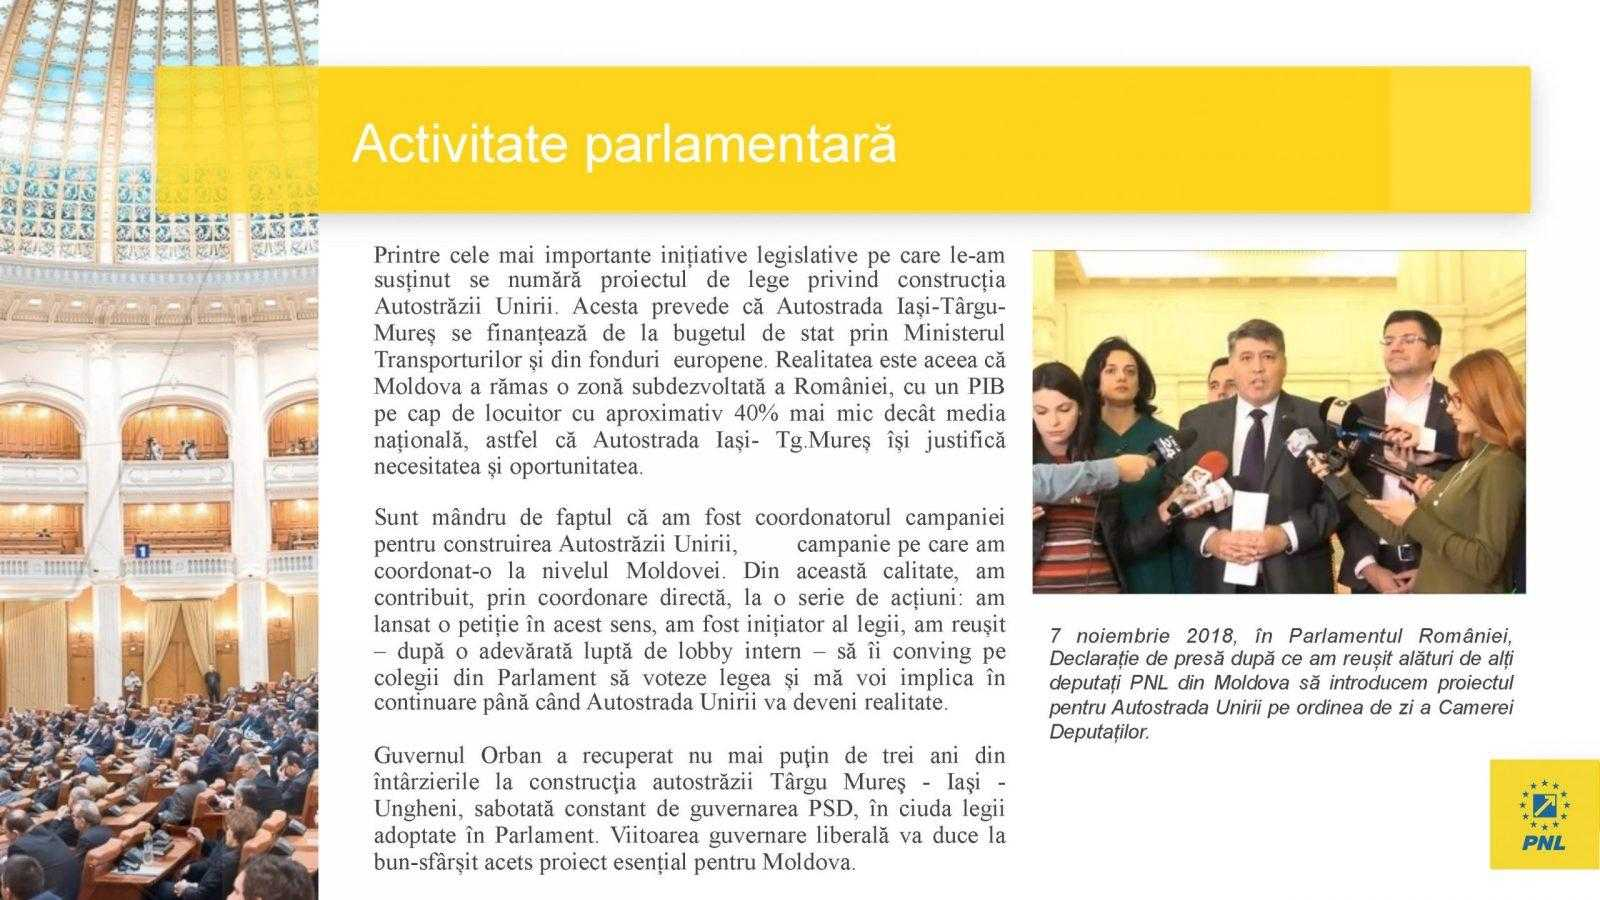 raport de activitate laurentiu leoreanu Page 05 scaled